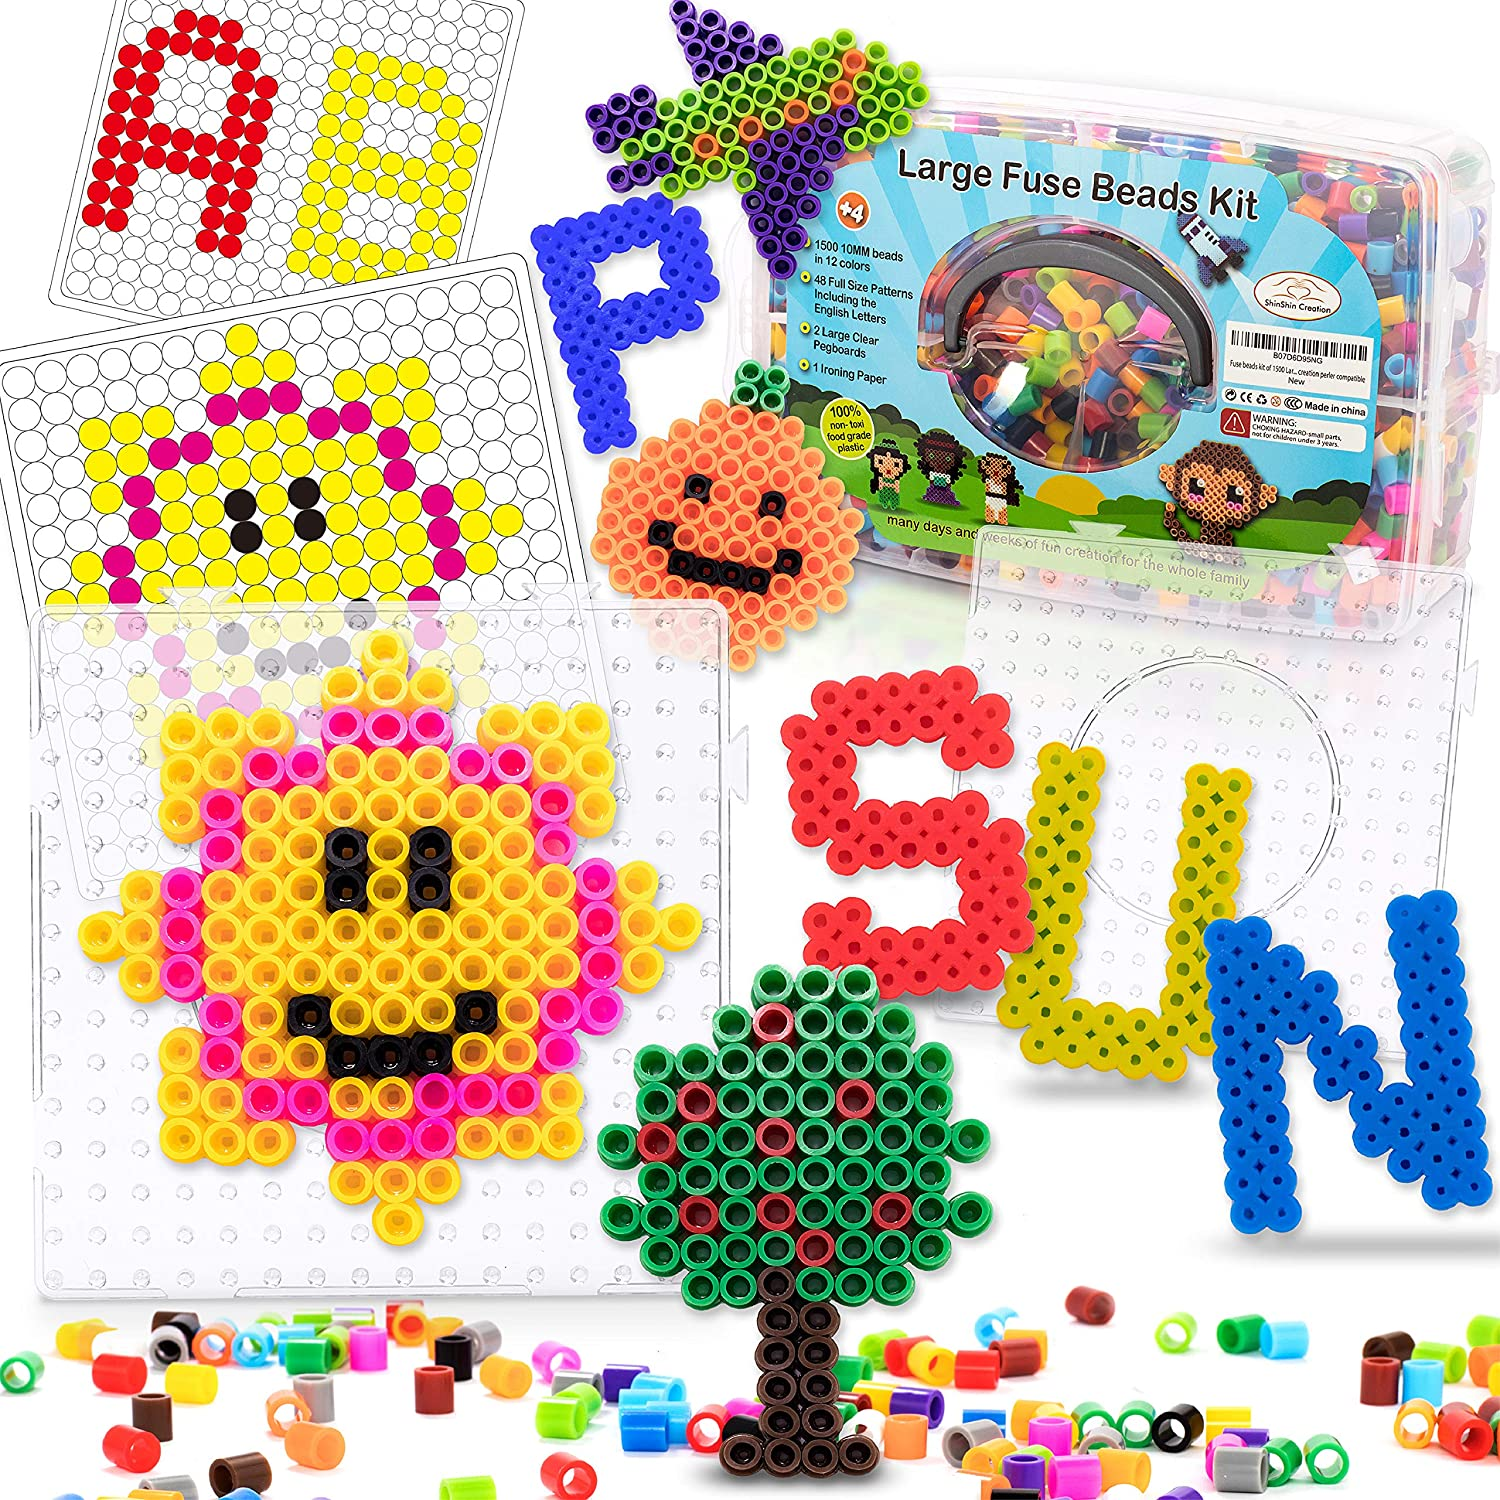 Fuse Beads kit of 1500 Large 10MM Perfect for Ages 4-7 with 48 Patterns and pegboard English Learning DIY Art Creation Shinshin creation